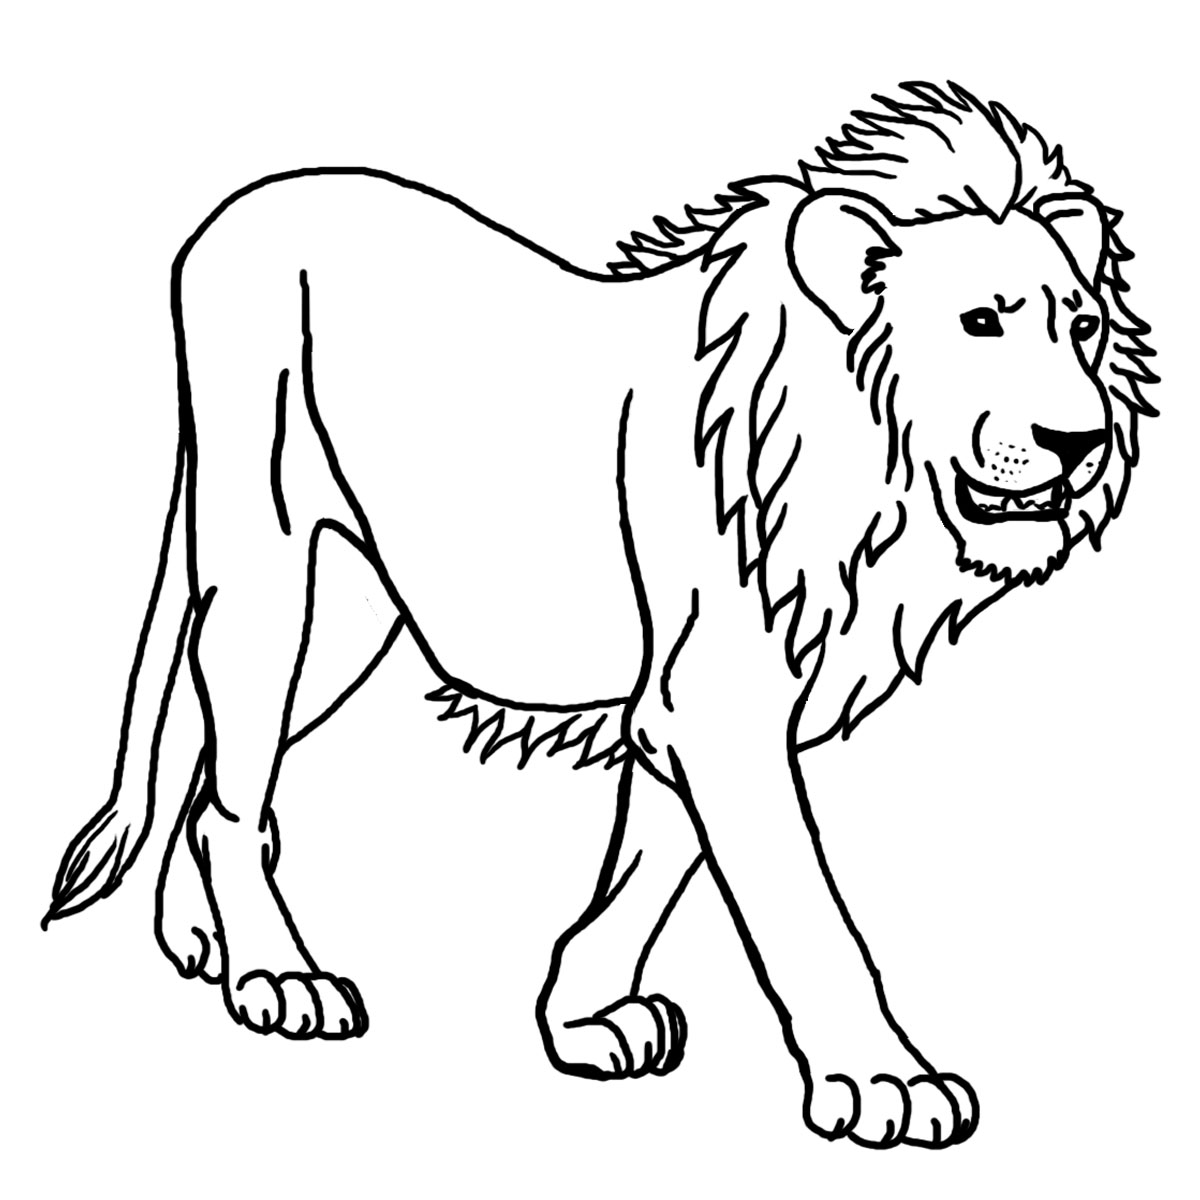 lion coloring pages Only Coloring